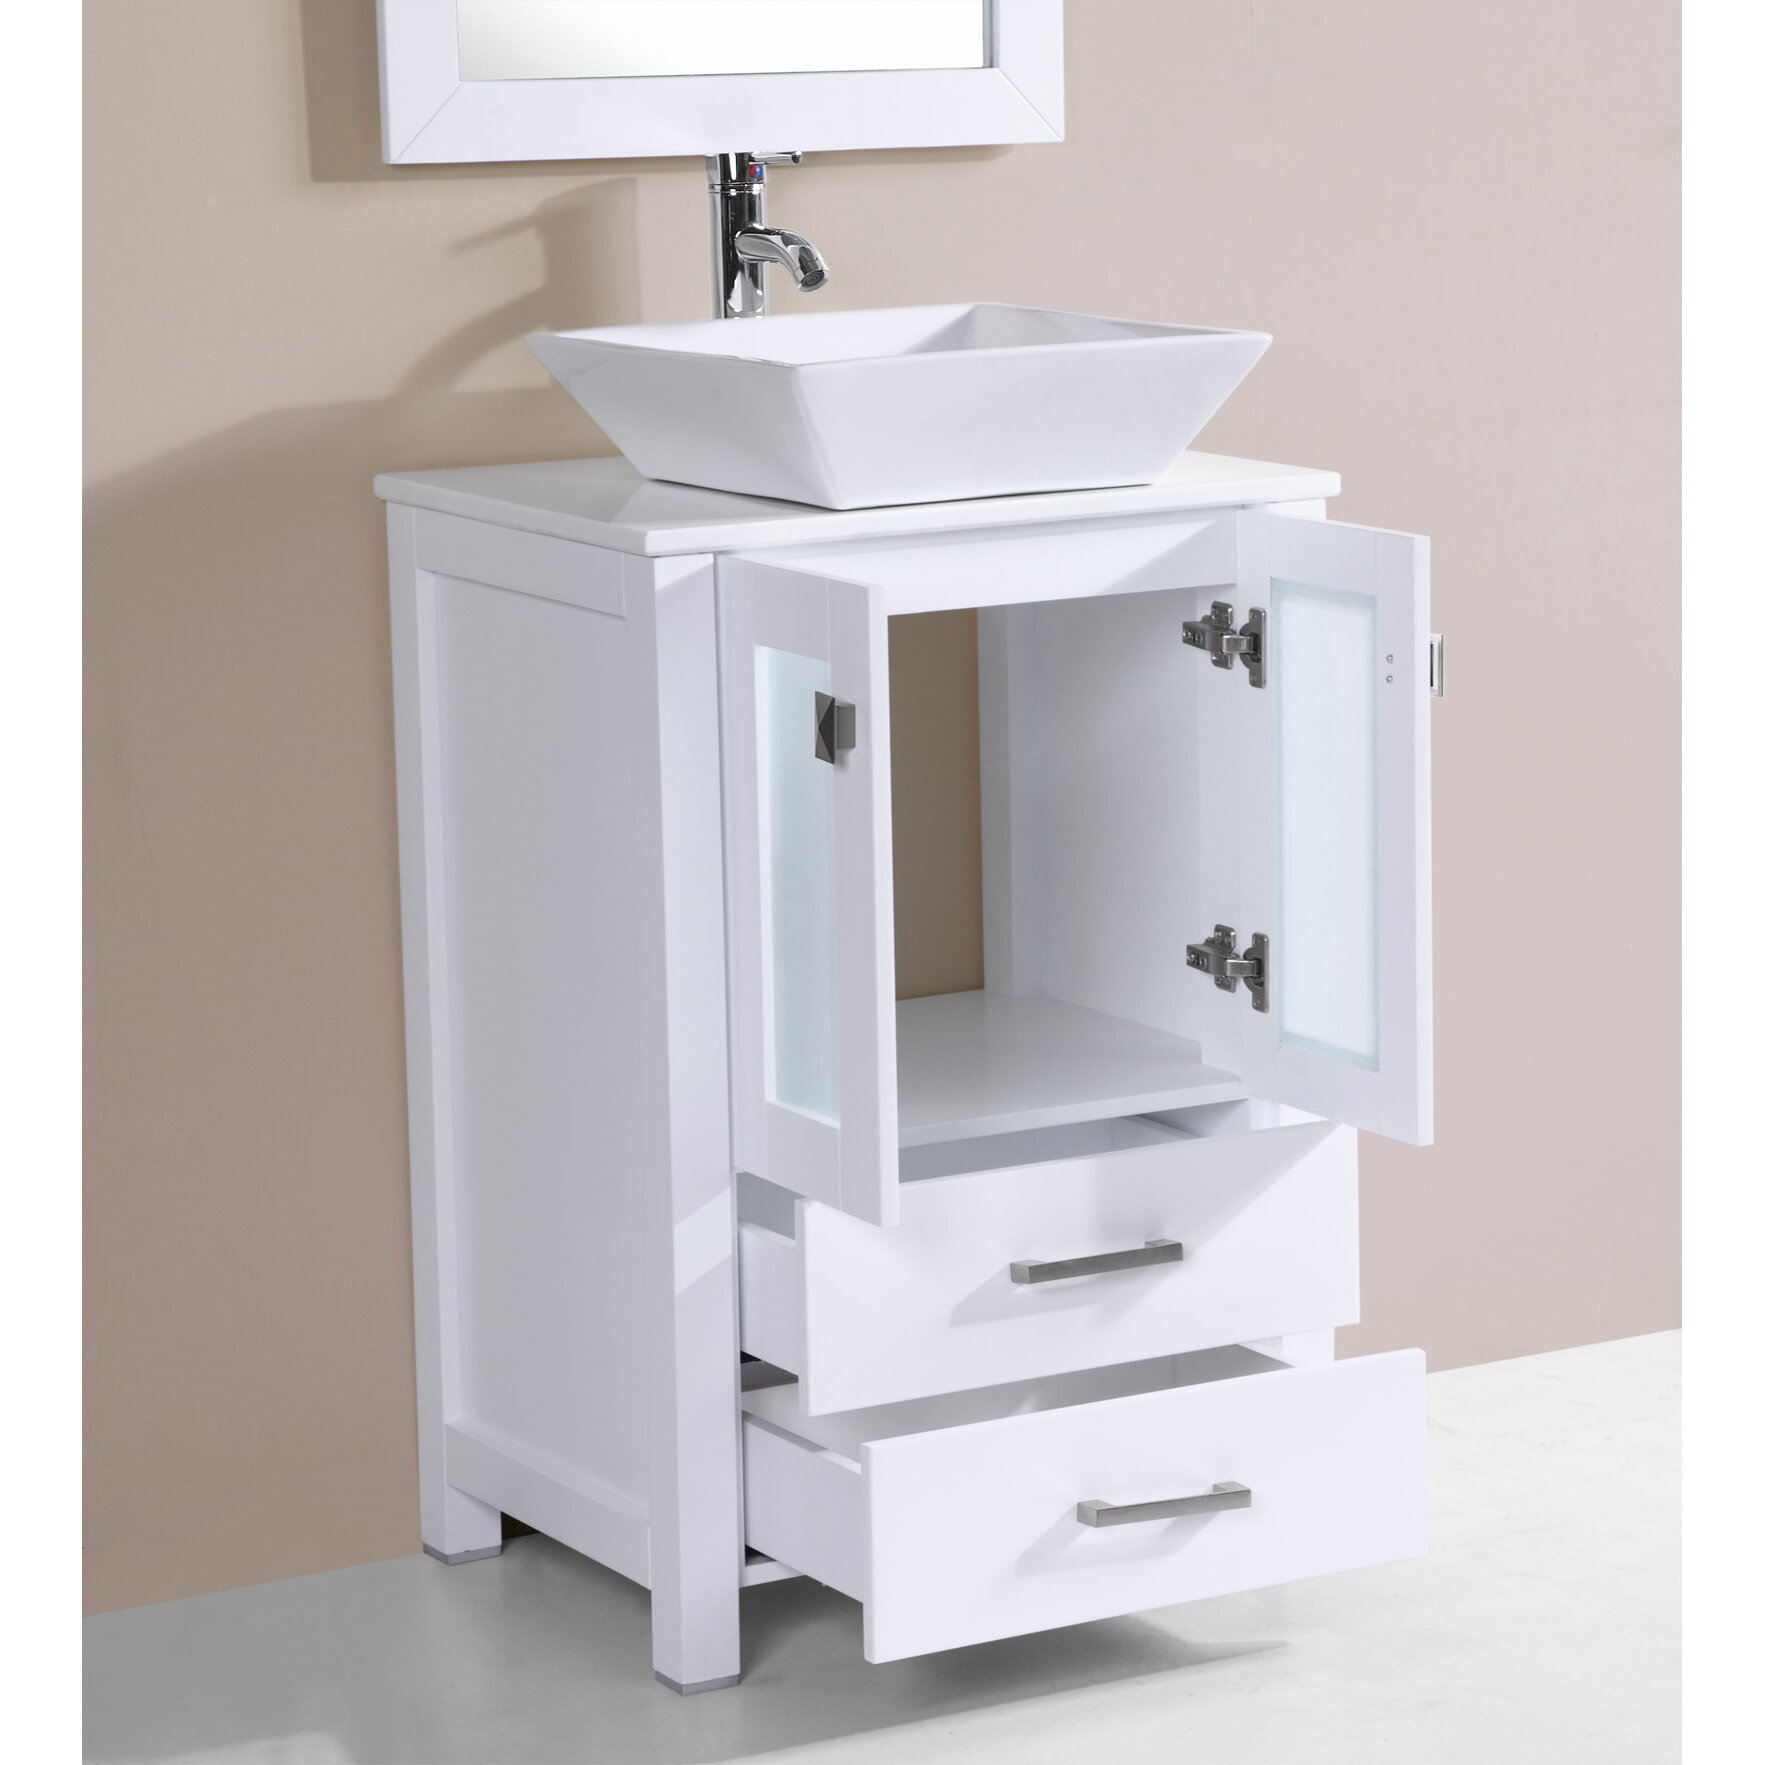 Collection Newport 24 Single Modern Bathroom Vanity Set With Mirror